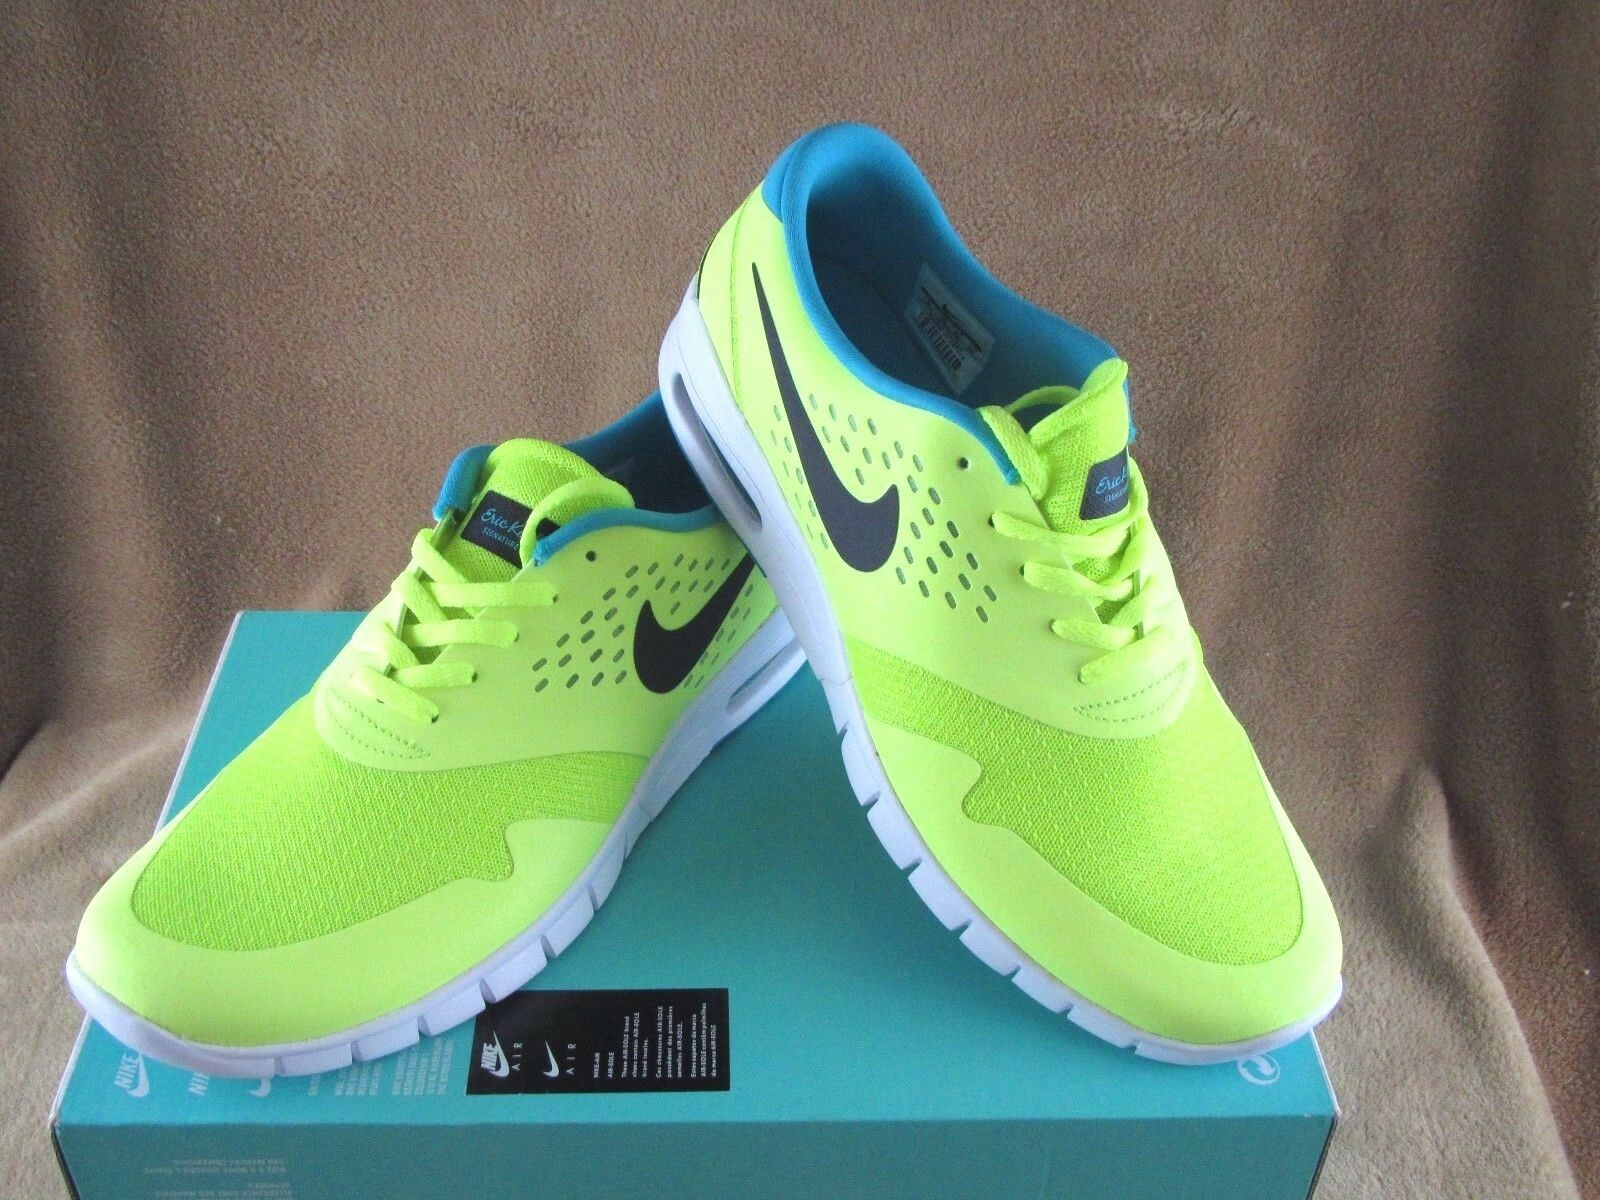 NEW NIKE ERIC KOSTON 2 MAX SKATE SHOE VOLT/BLK/DUSTY CACTUS MEN'S 11 New shoes for men and women, limited time discount